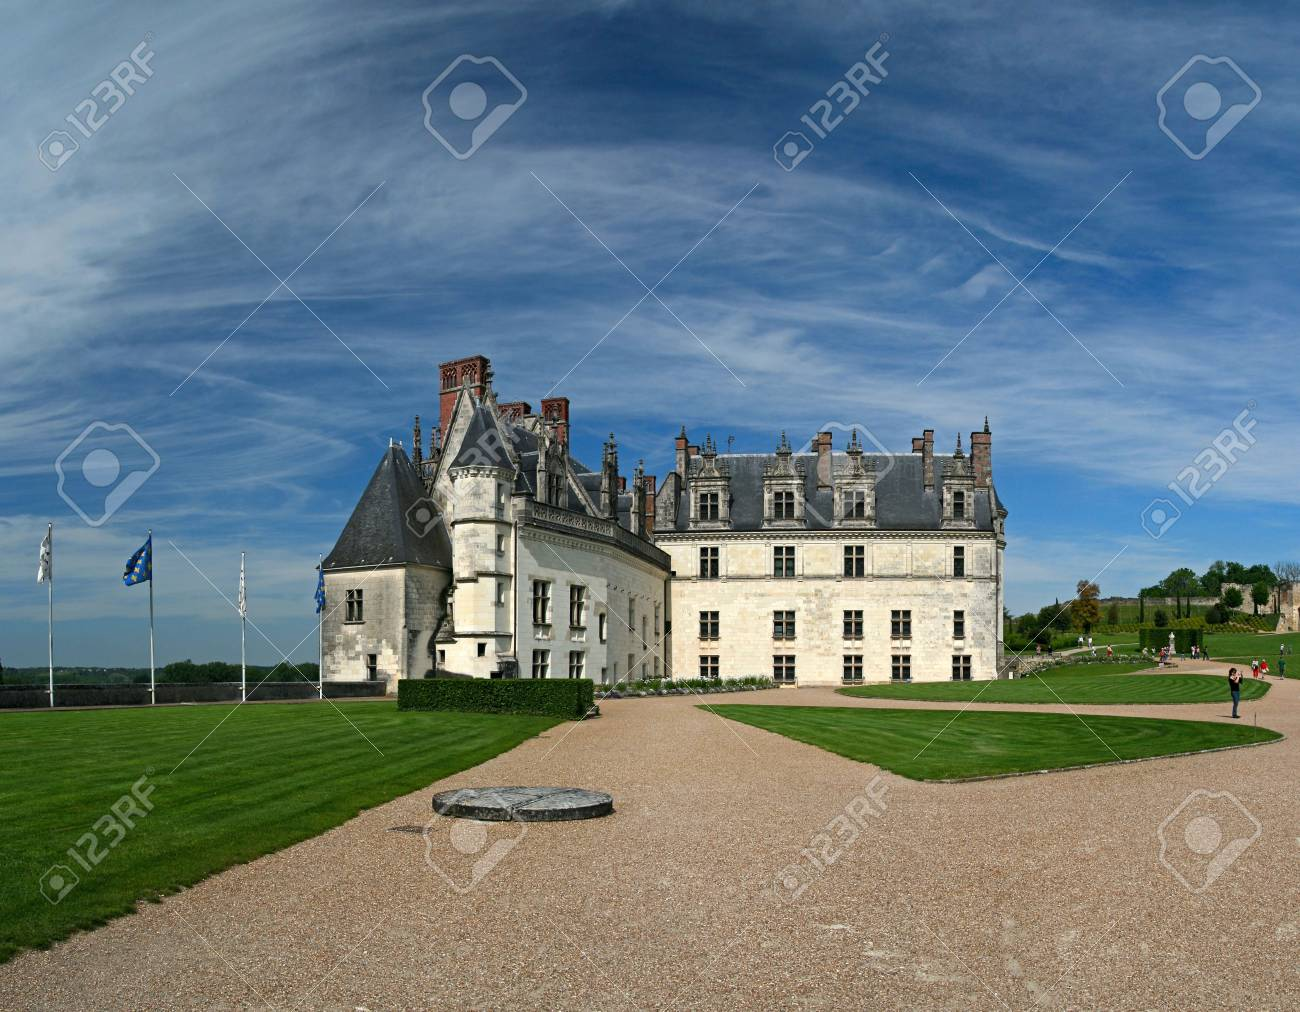 The chateau of Amboise in the Loire valley, France Stock Photo - 3264697